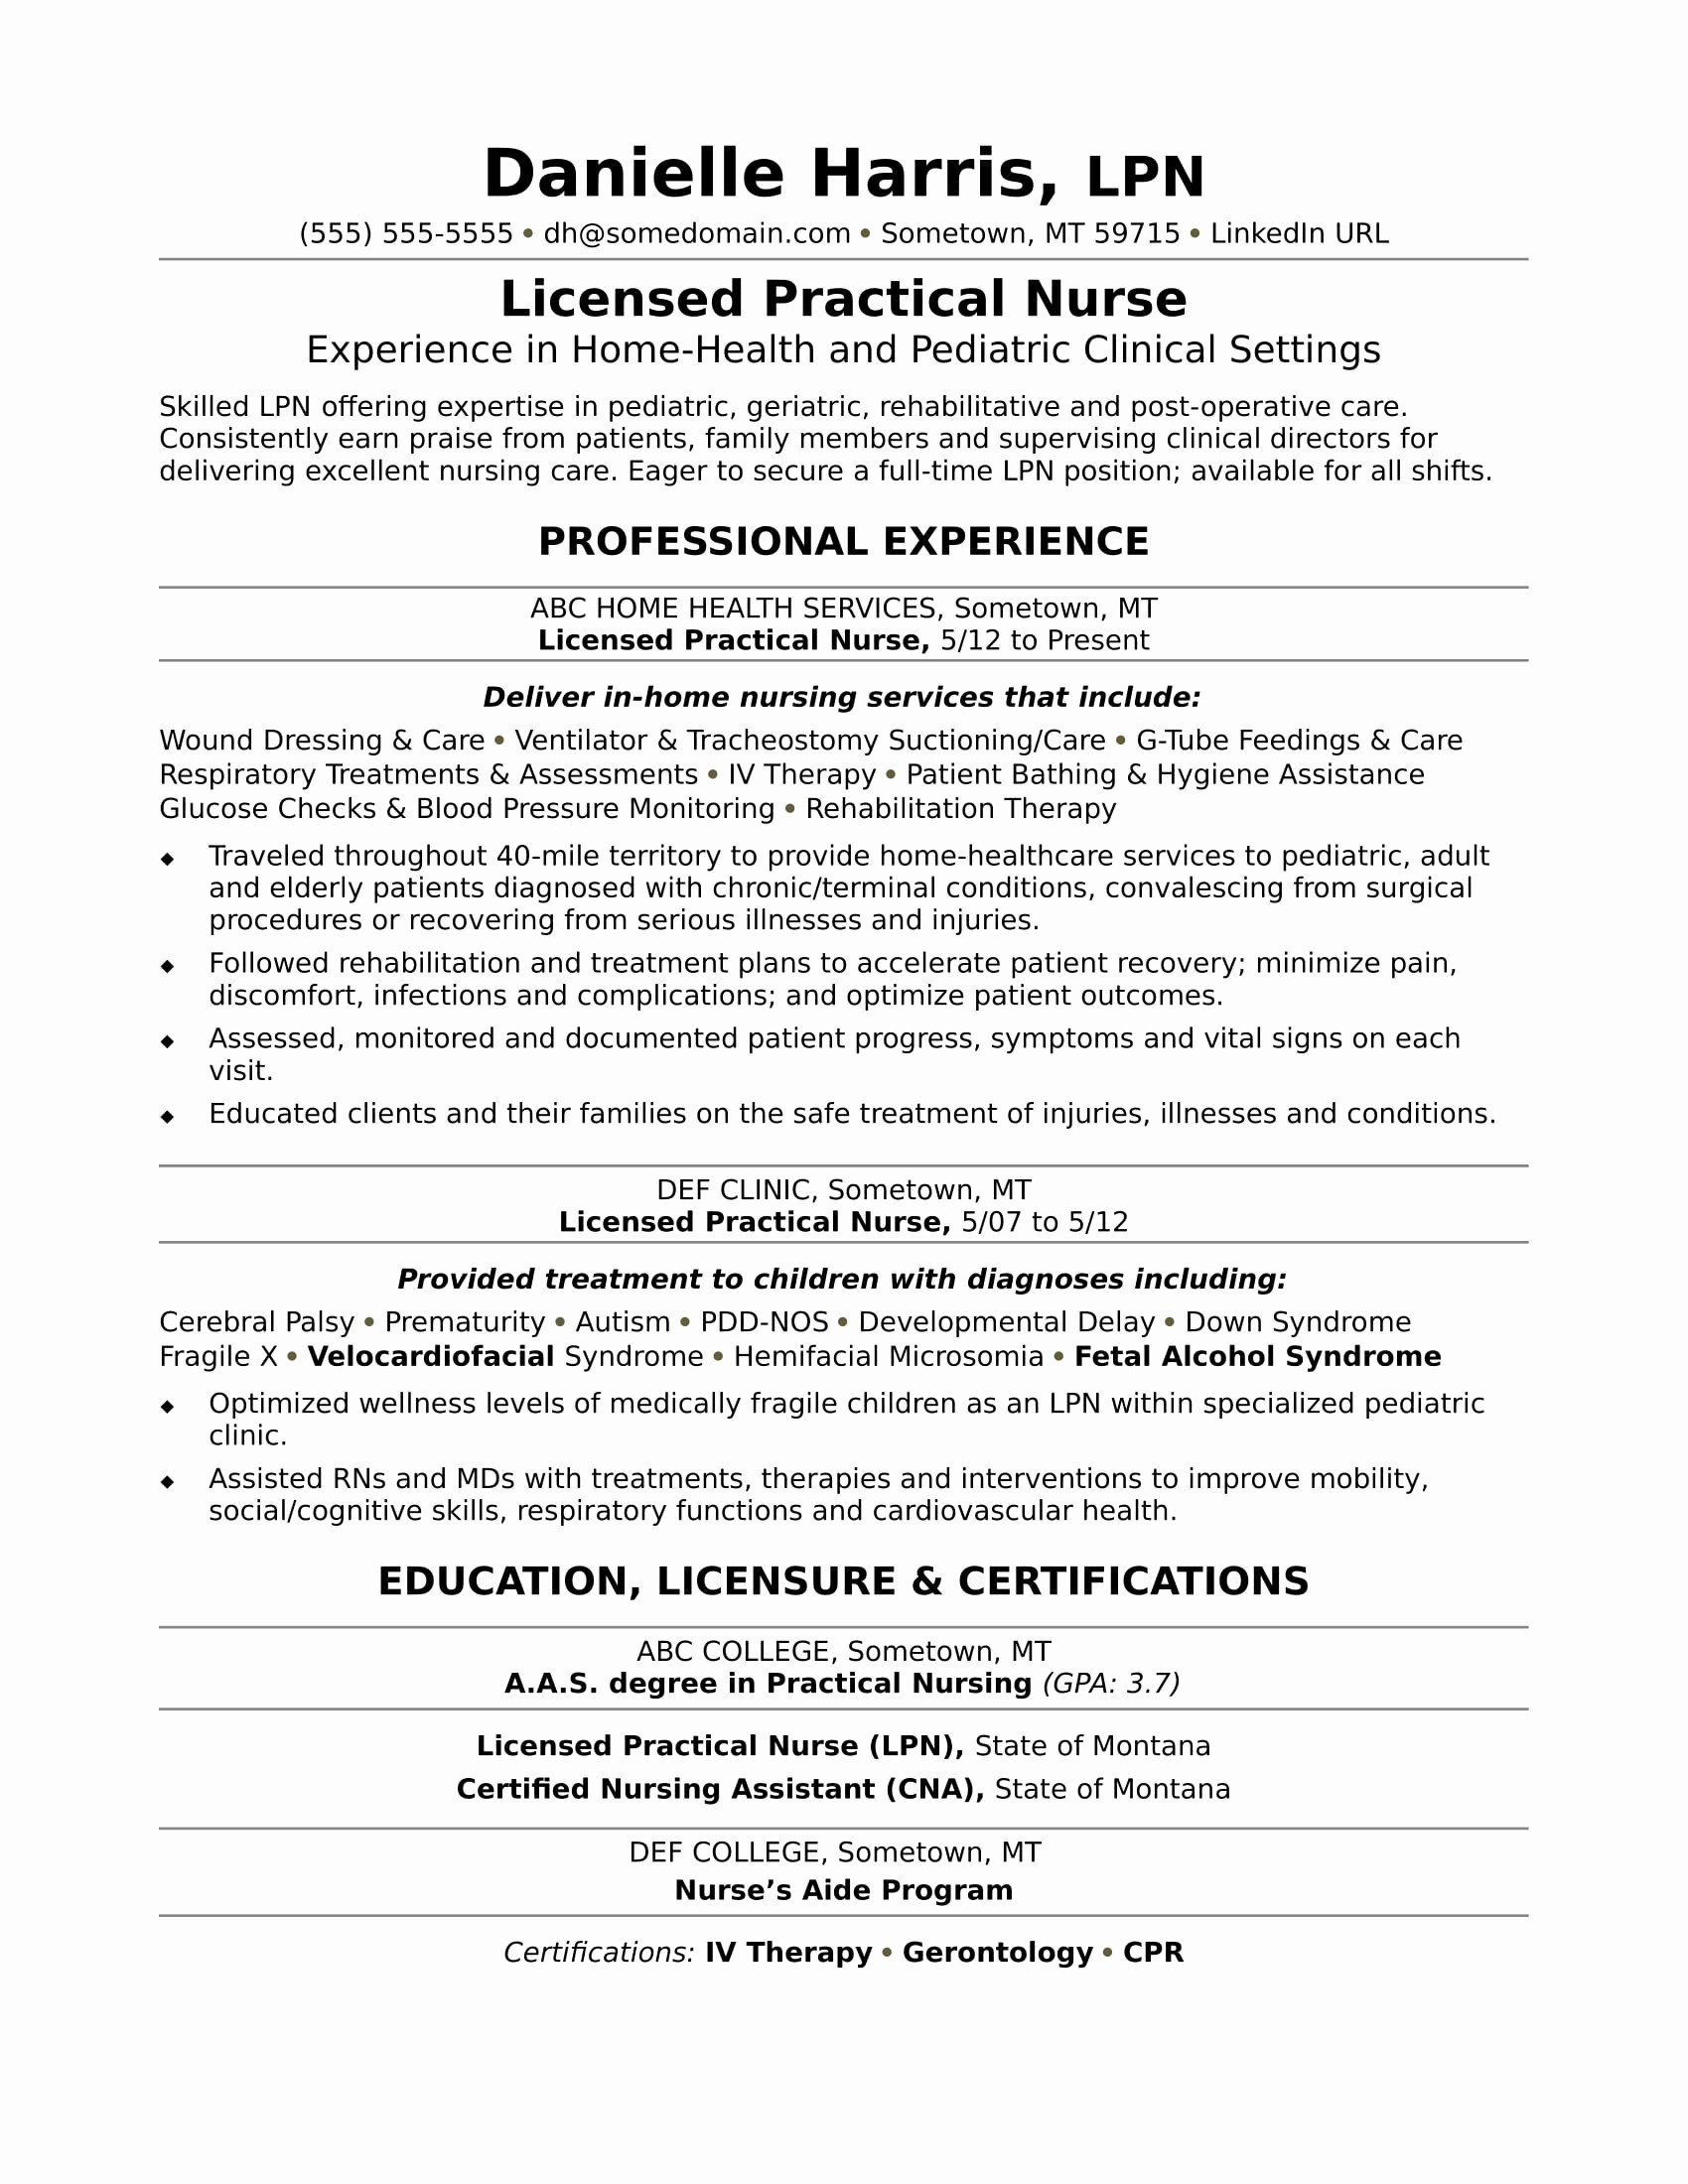 Nursing Resume Template Microsoft Word - 2017 Nursing Resume Templates for Microsoft Word Vcuregistry